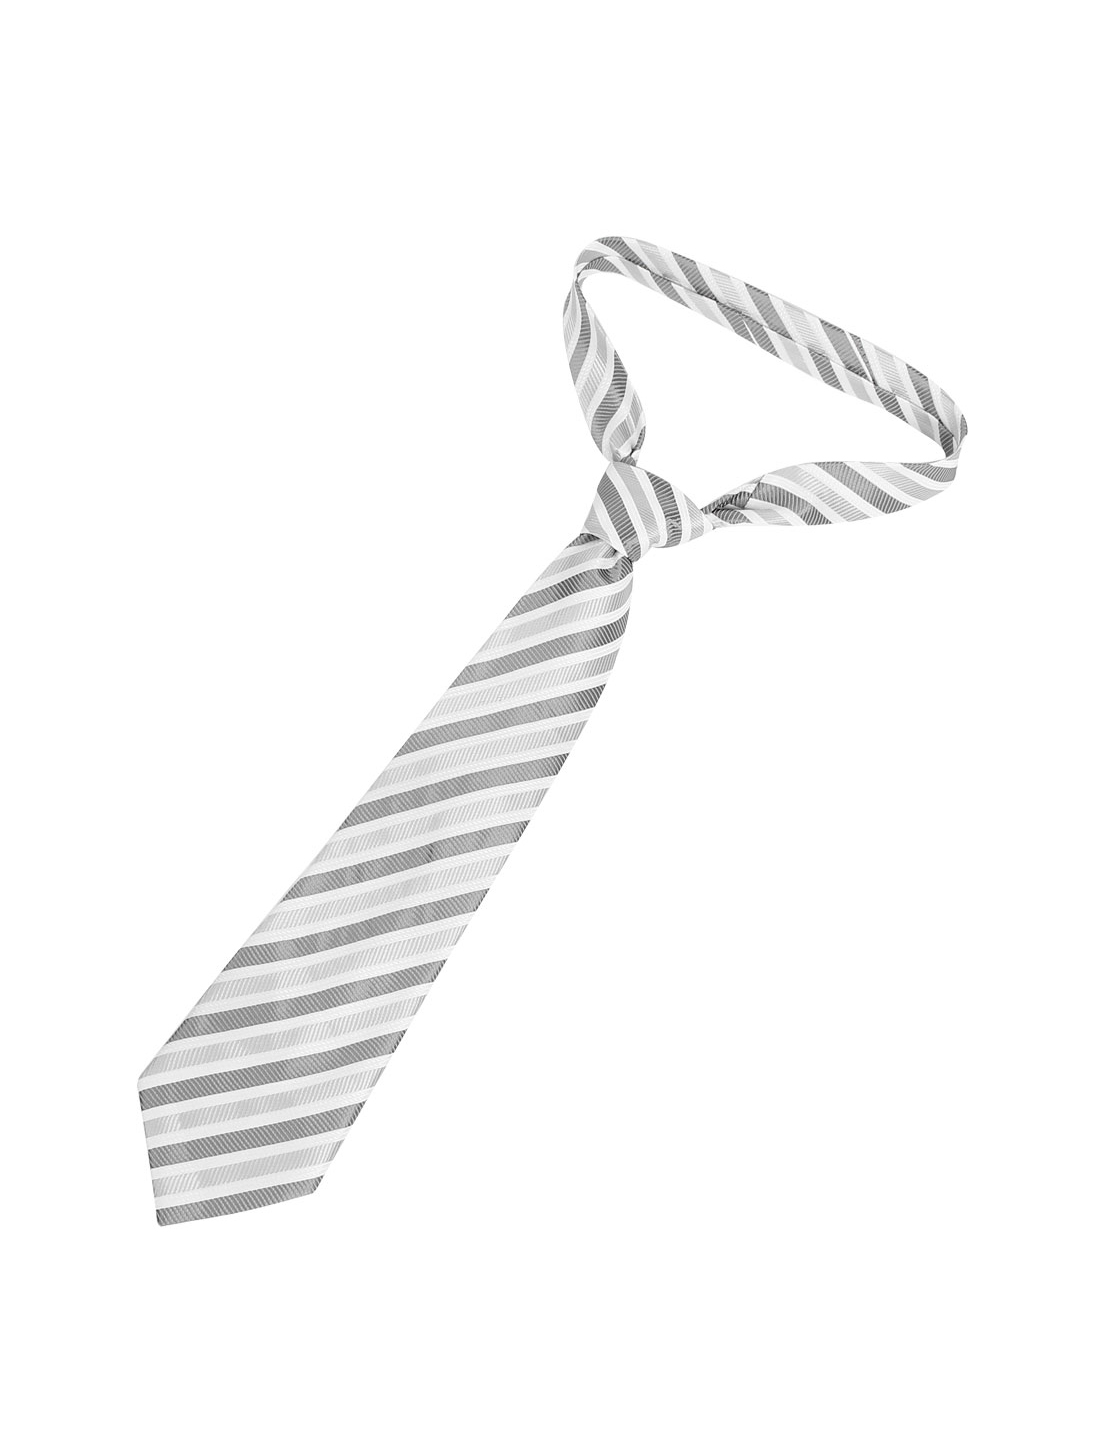 Man Textured Wide Twill Stripe Pattern Polyester Self Tie Necktie Gray White